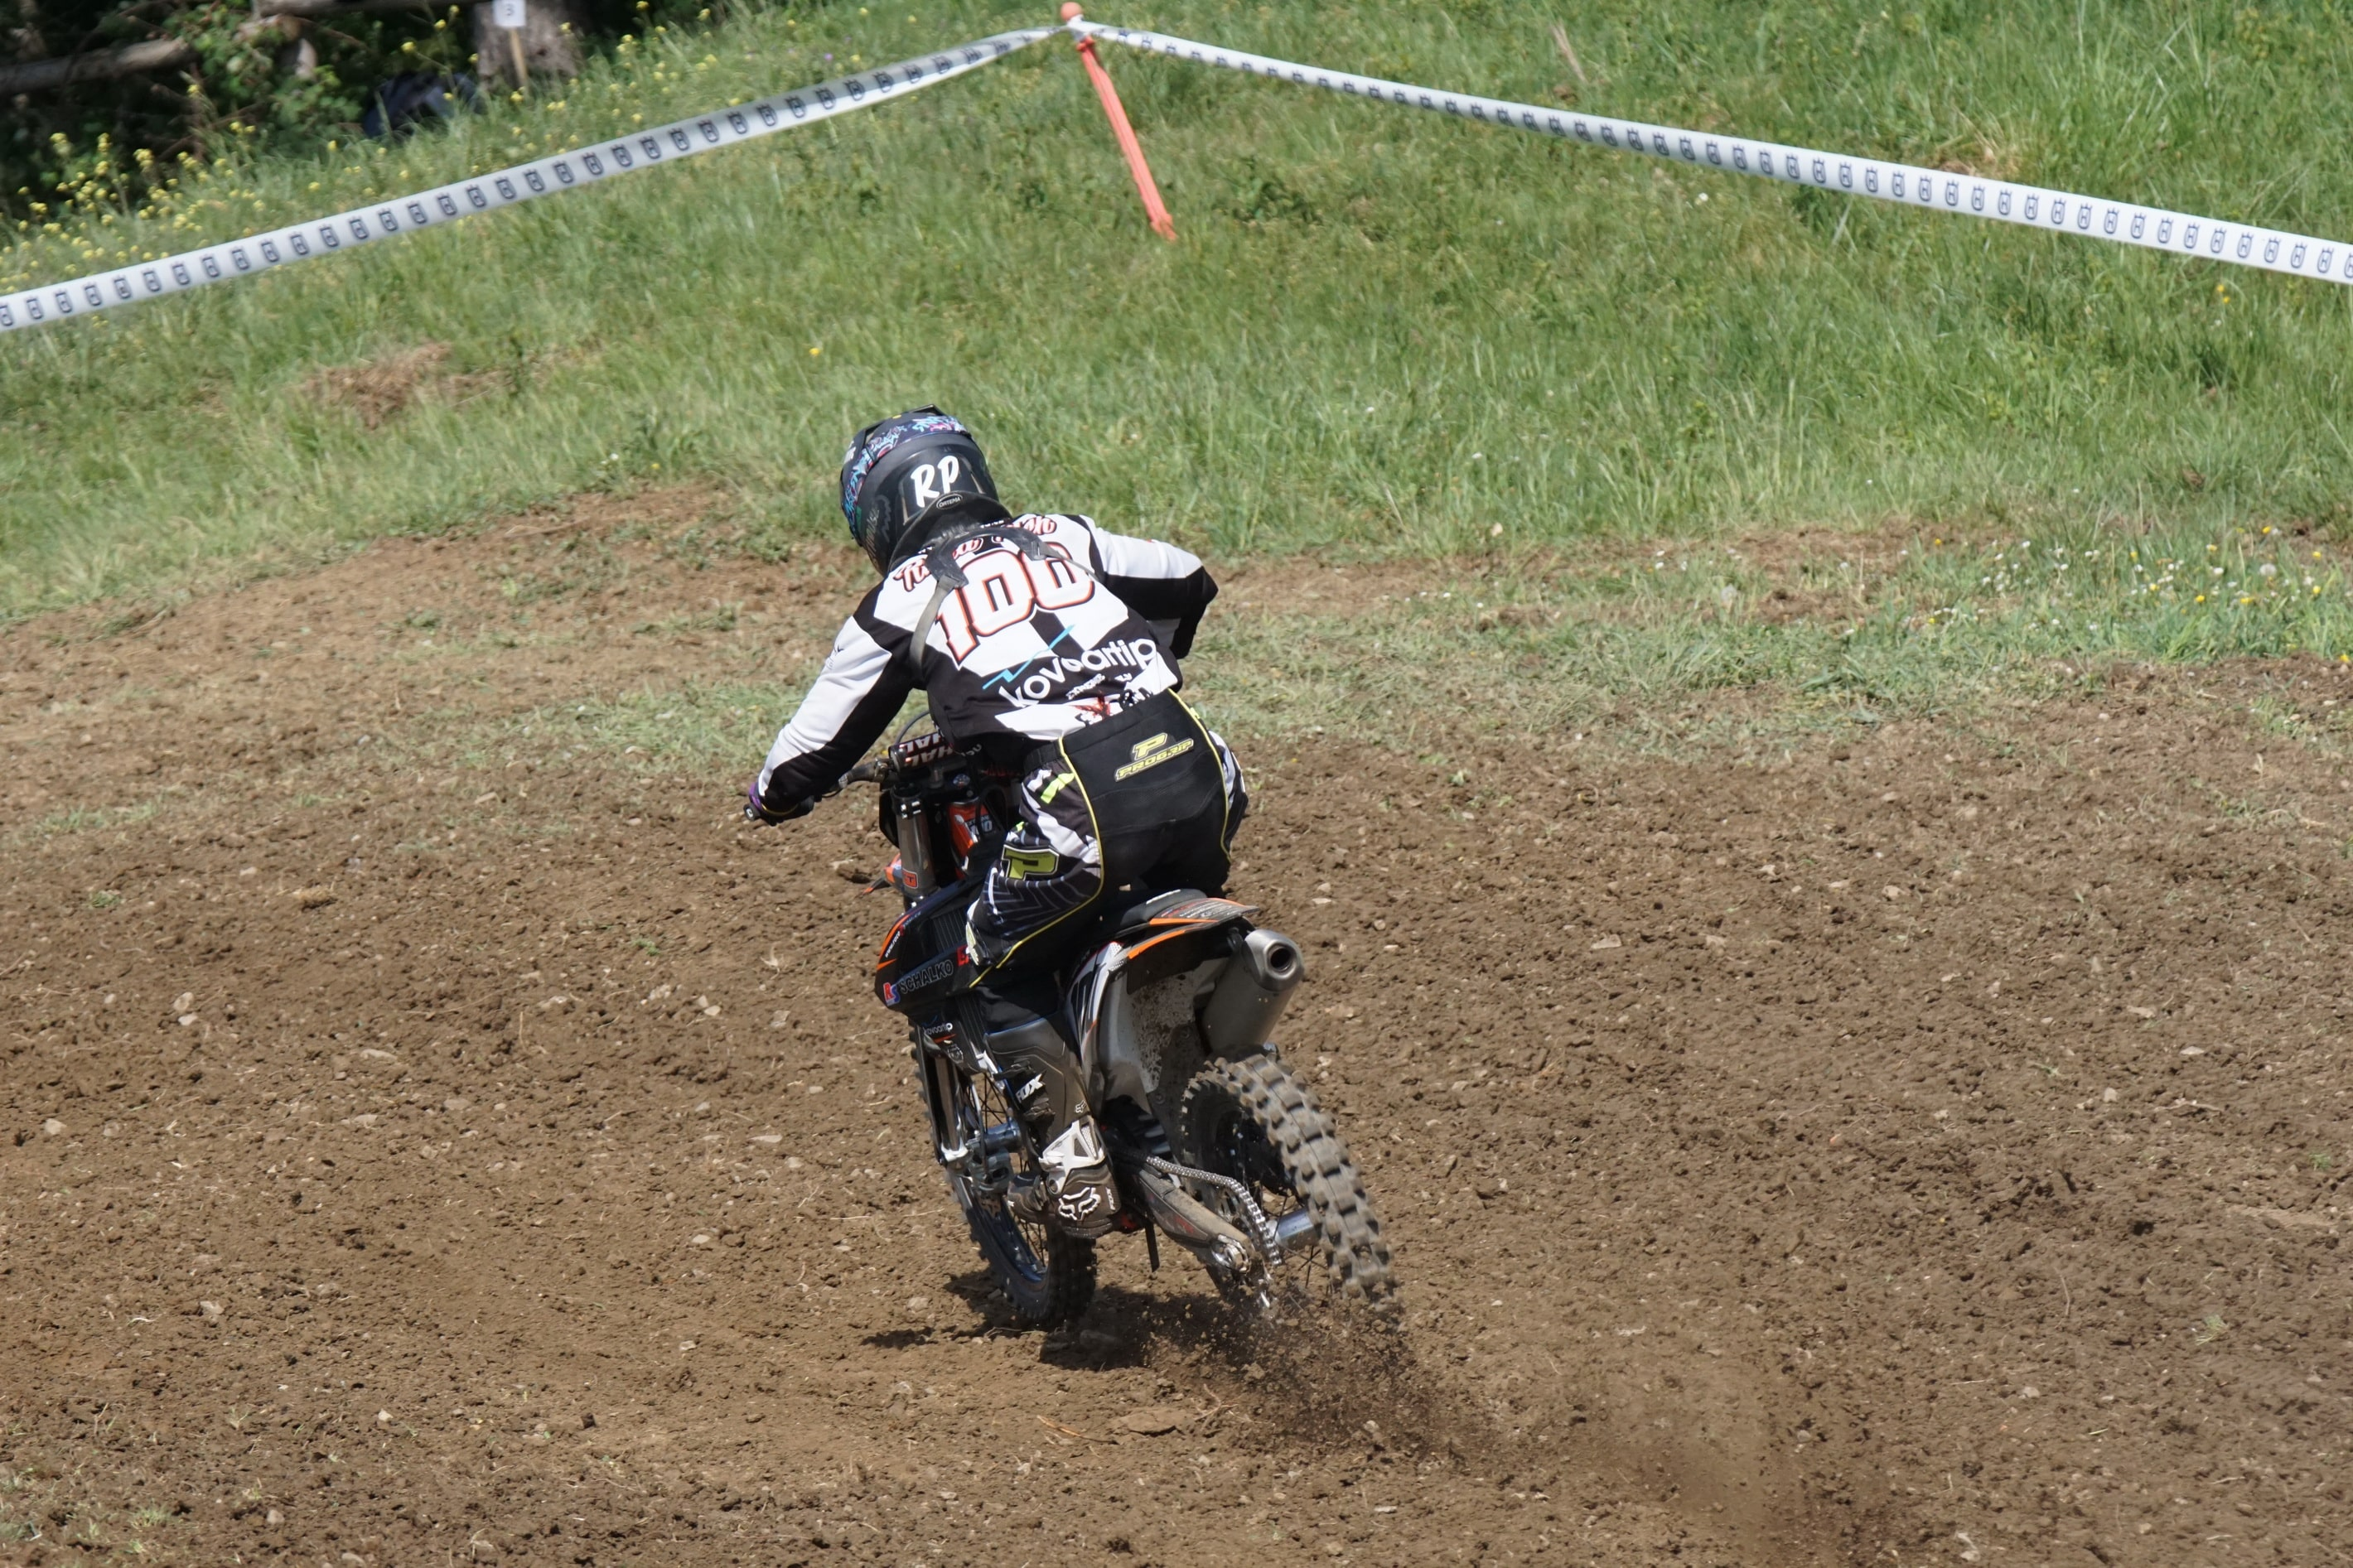 DSC 026_Moto Cross Sittendorf Teil1 am 29.04.2018